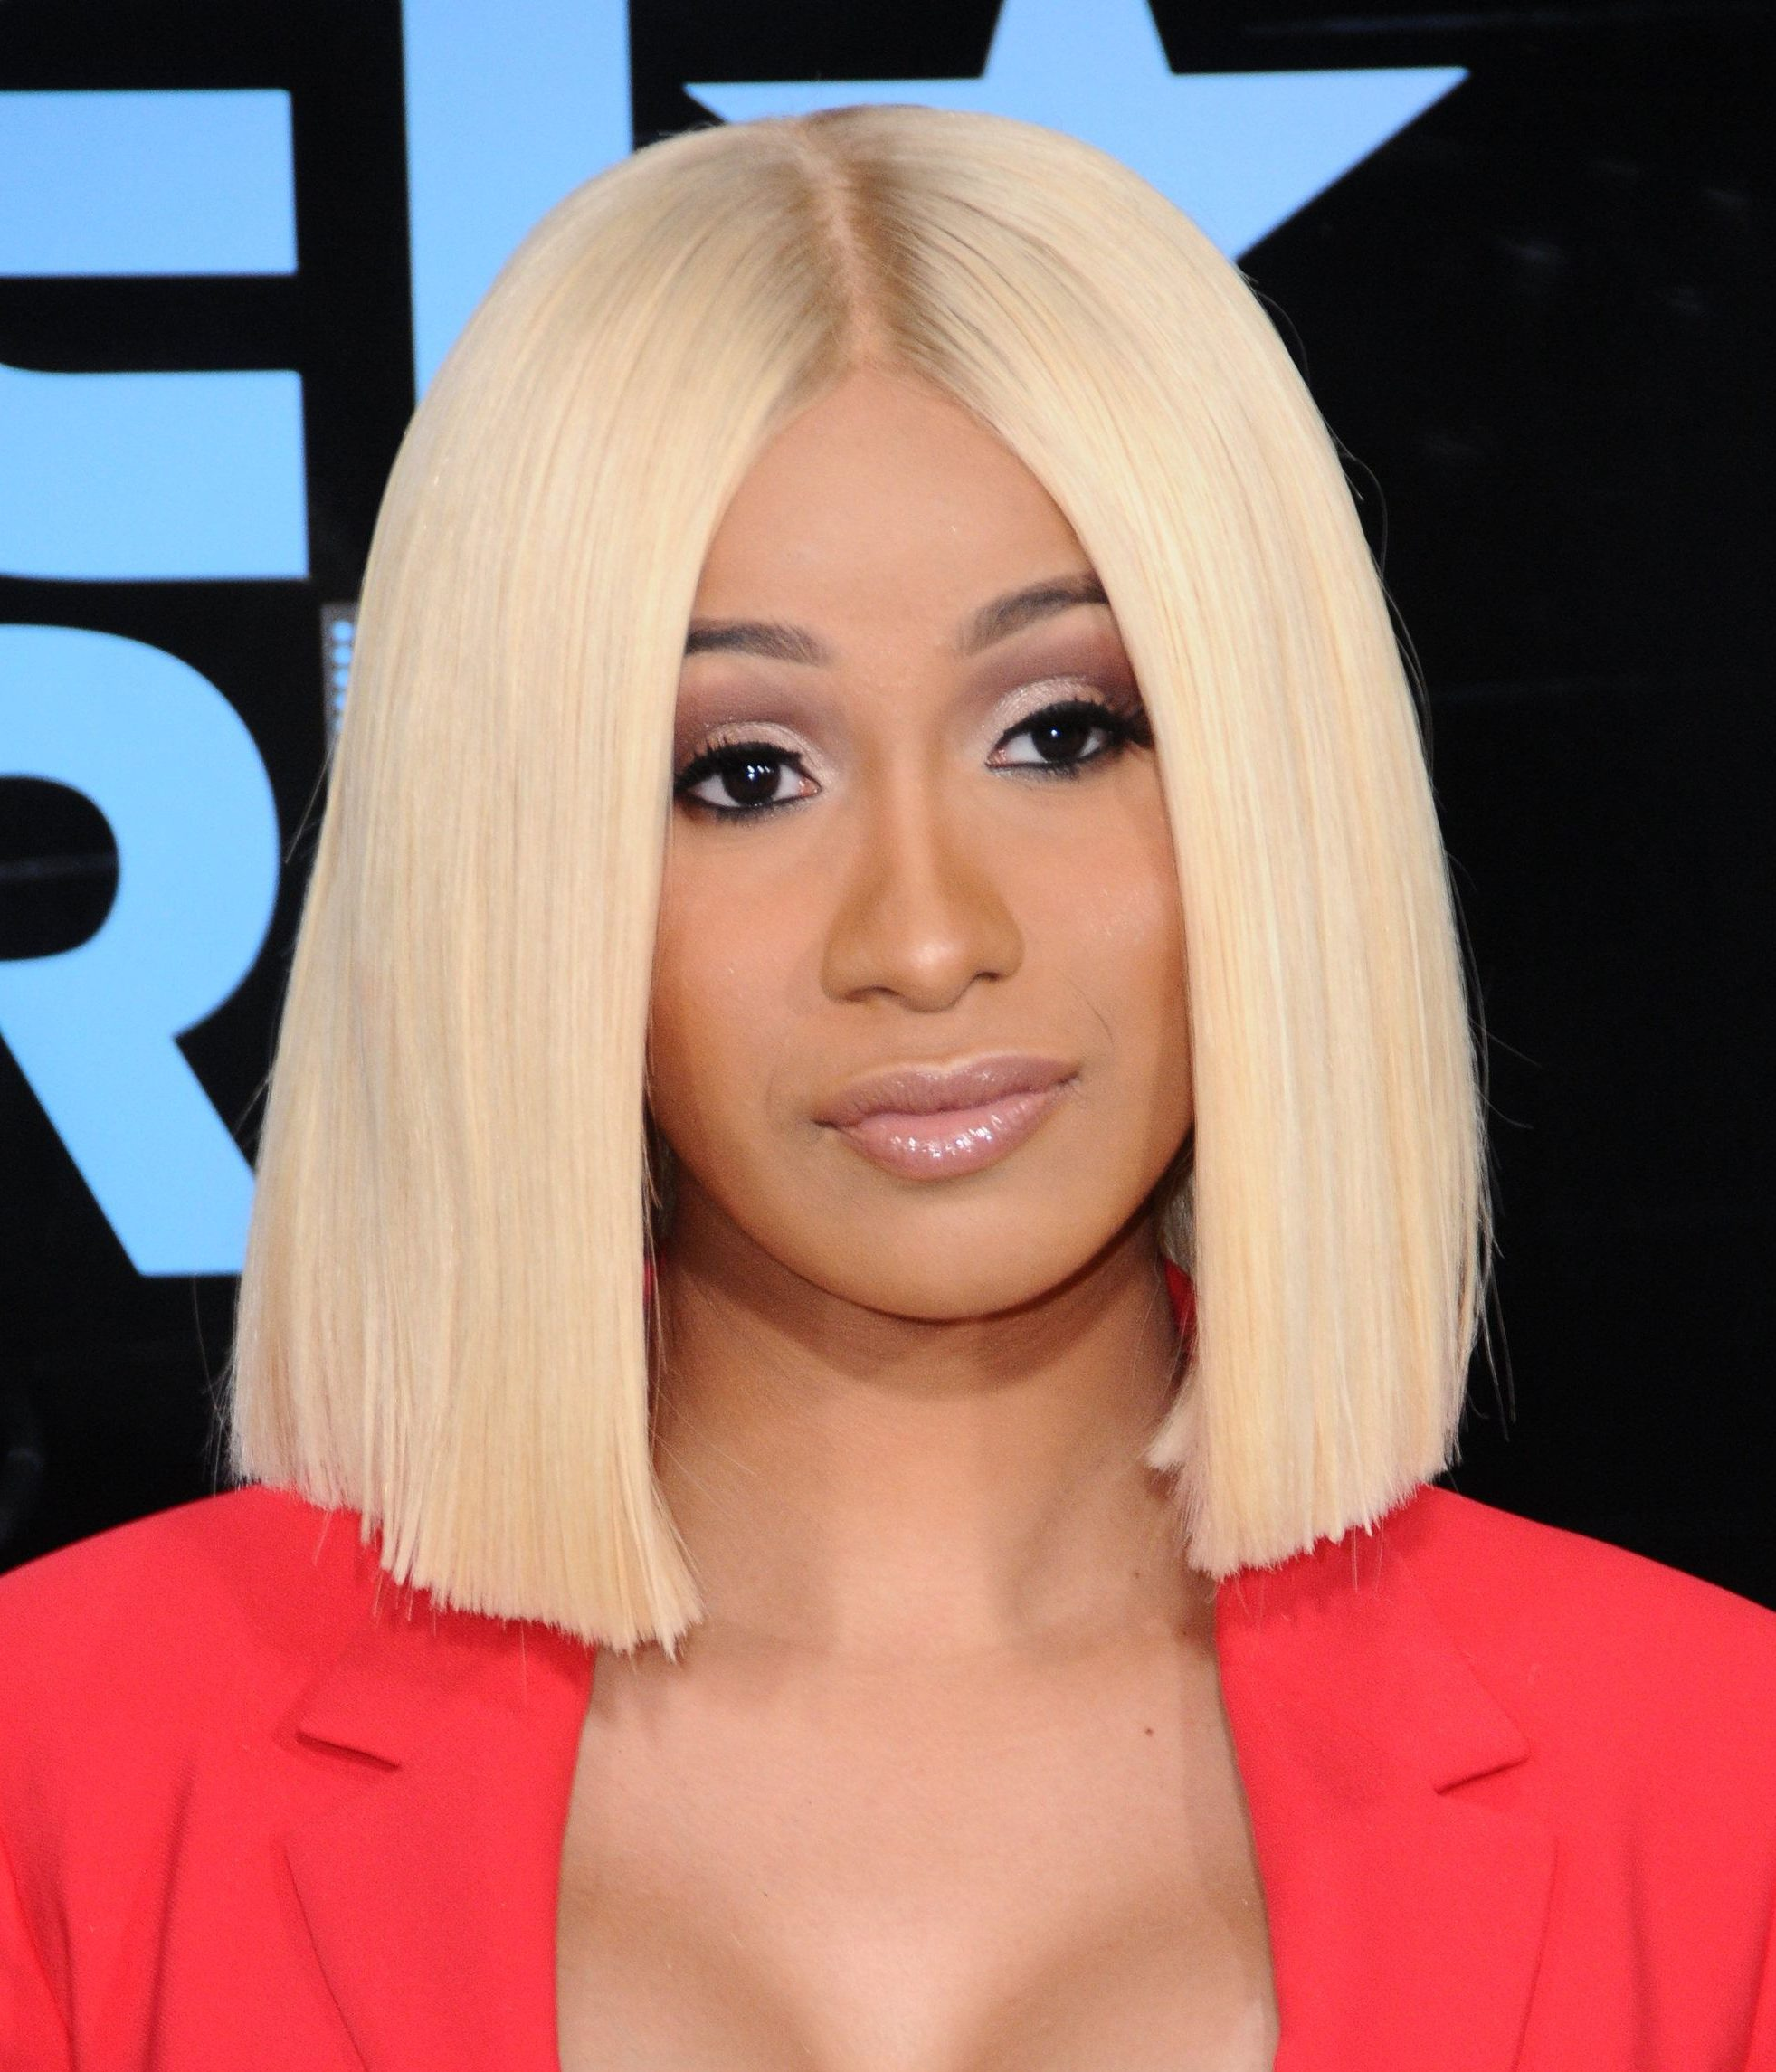 Cardi B platinum blonde straight and sleek bob at BET Awards 2017